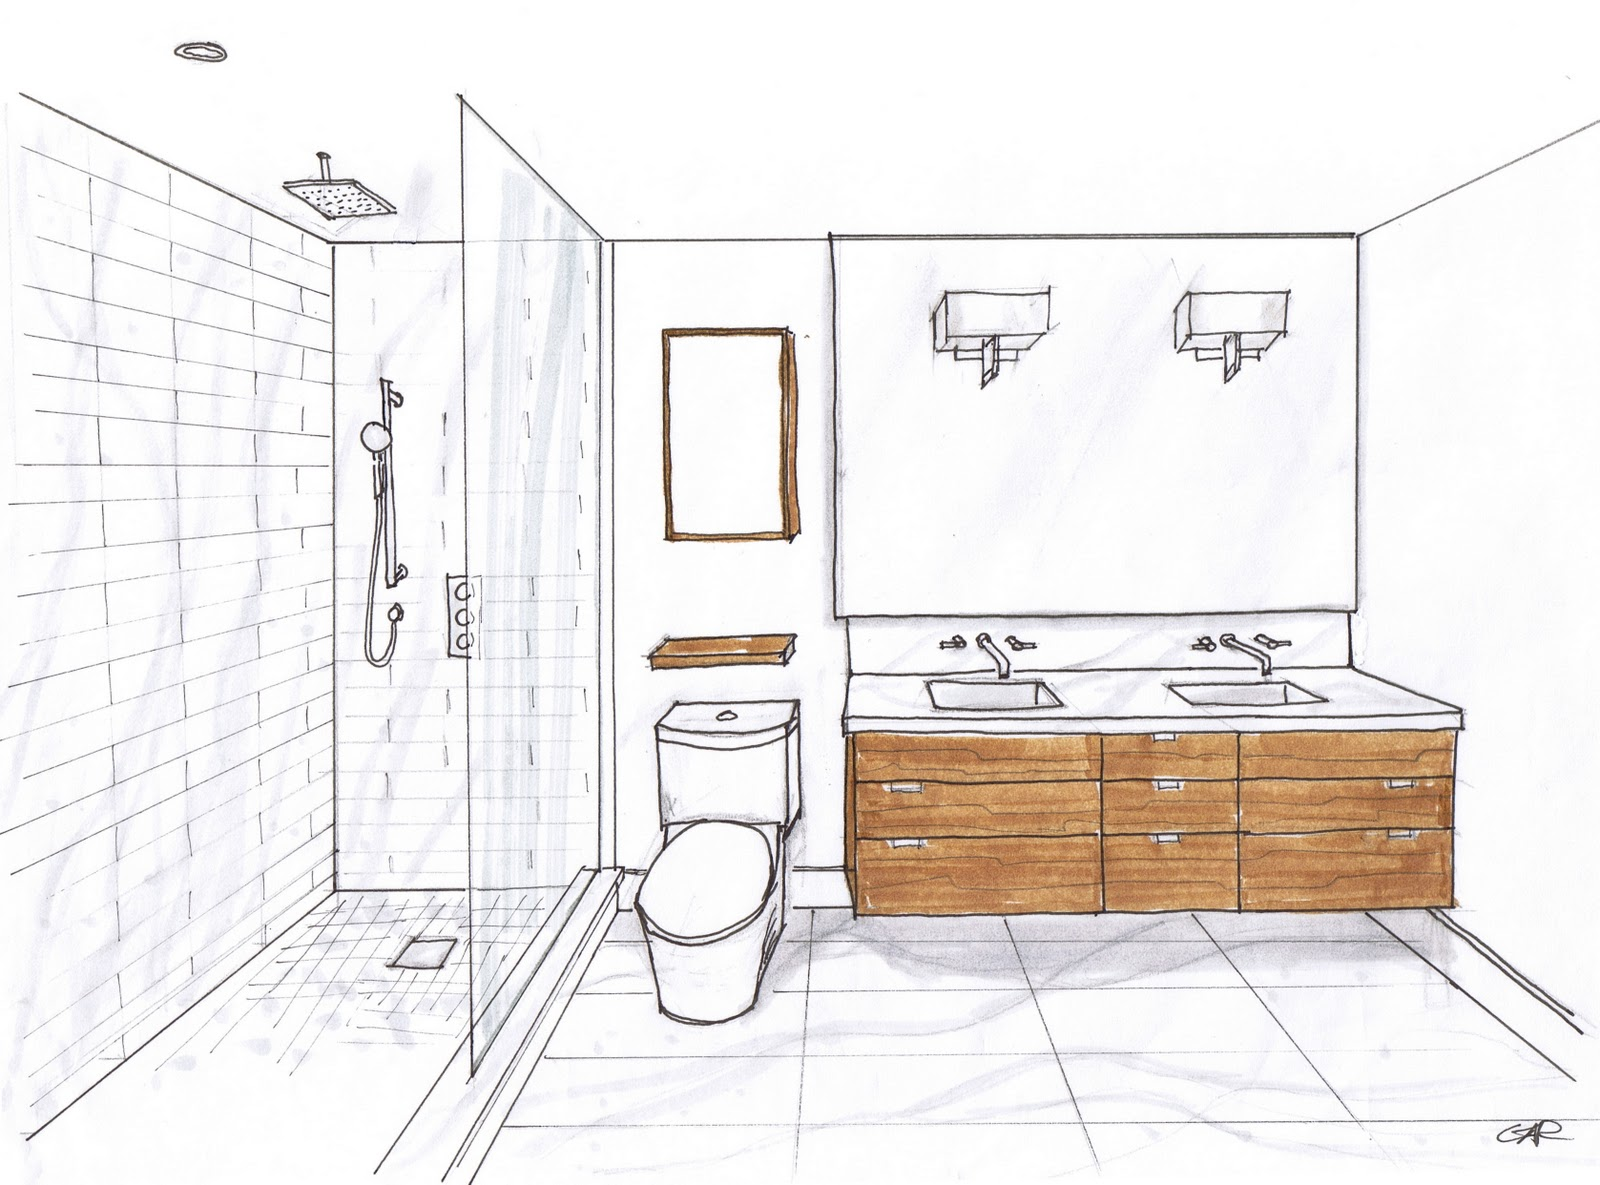 Bathroom perspective drawing - Bathroom Drawing Bathroom Drawing Image Tips Bathroom Draw Bathroom Easy Drawing